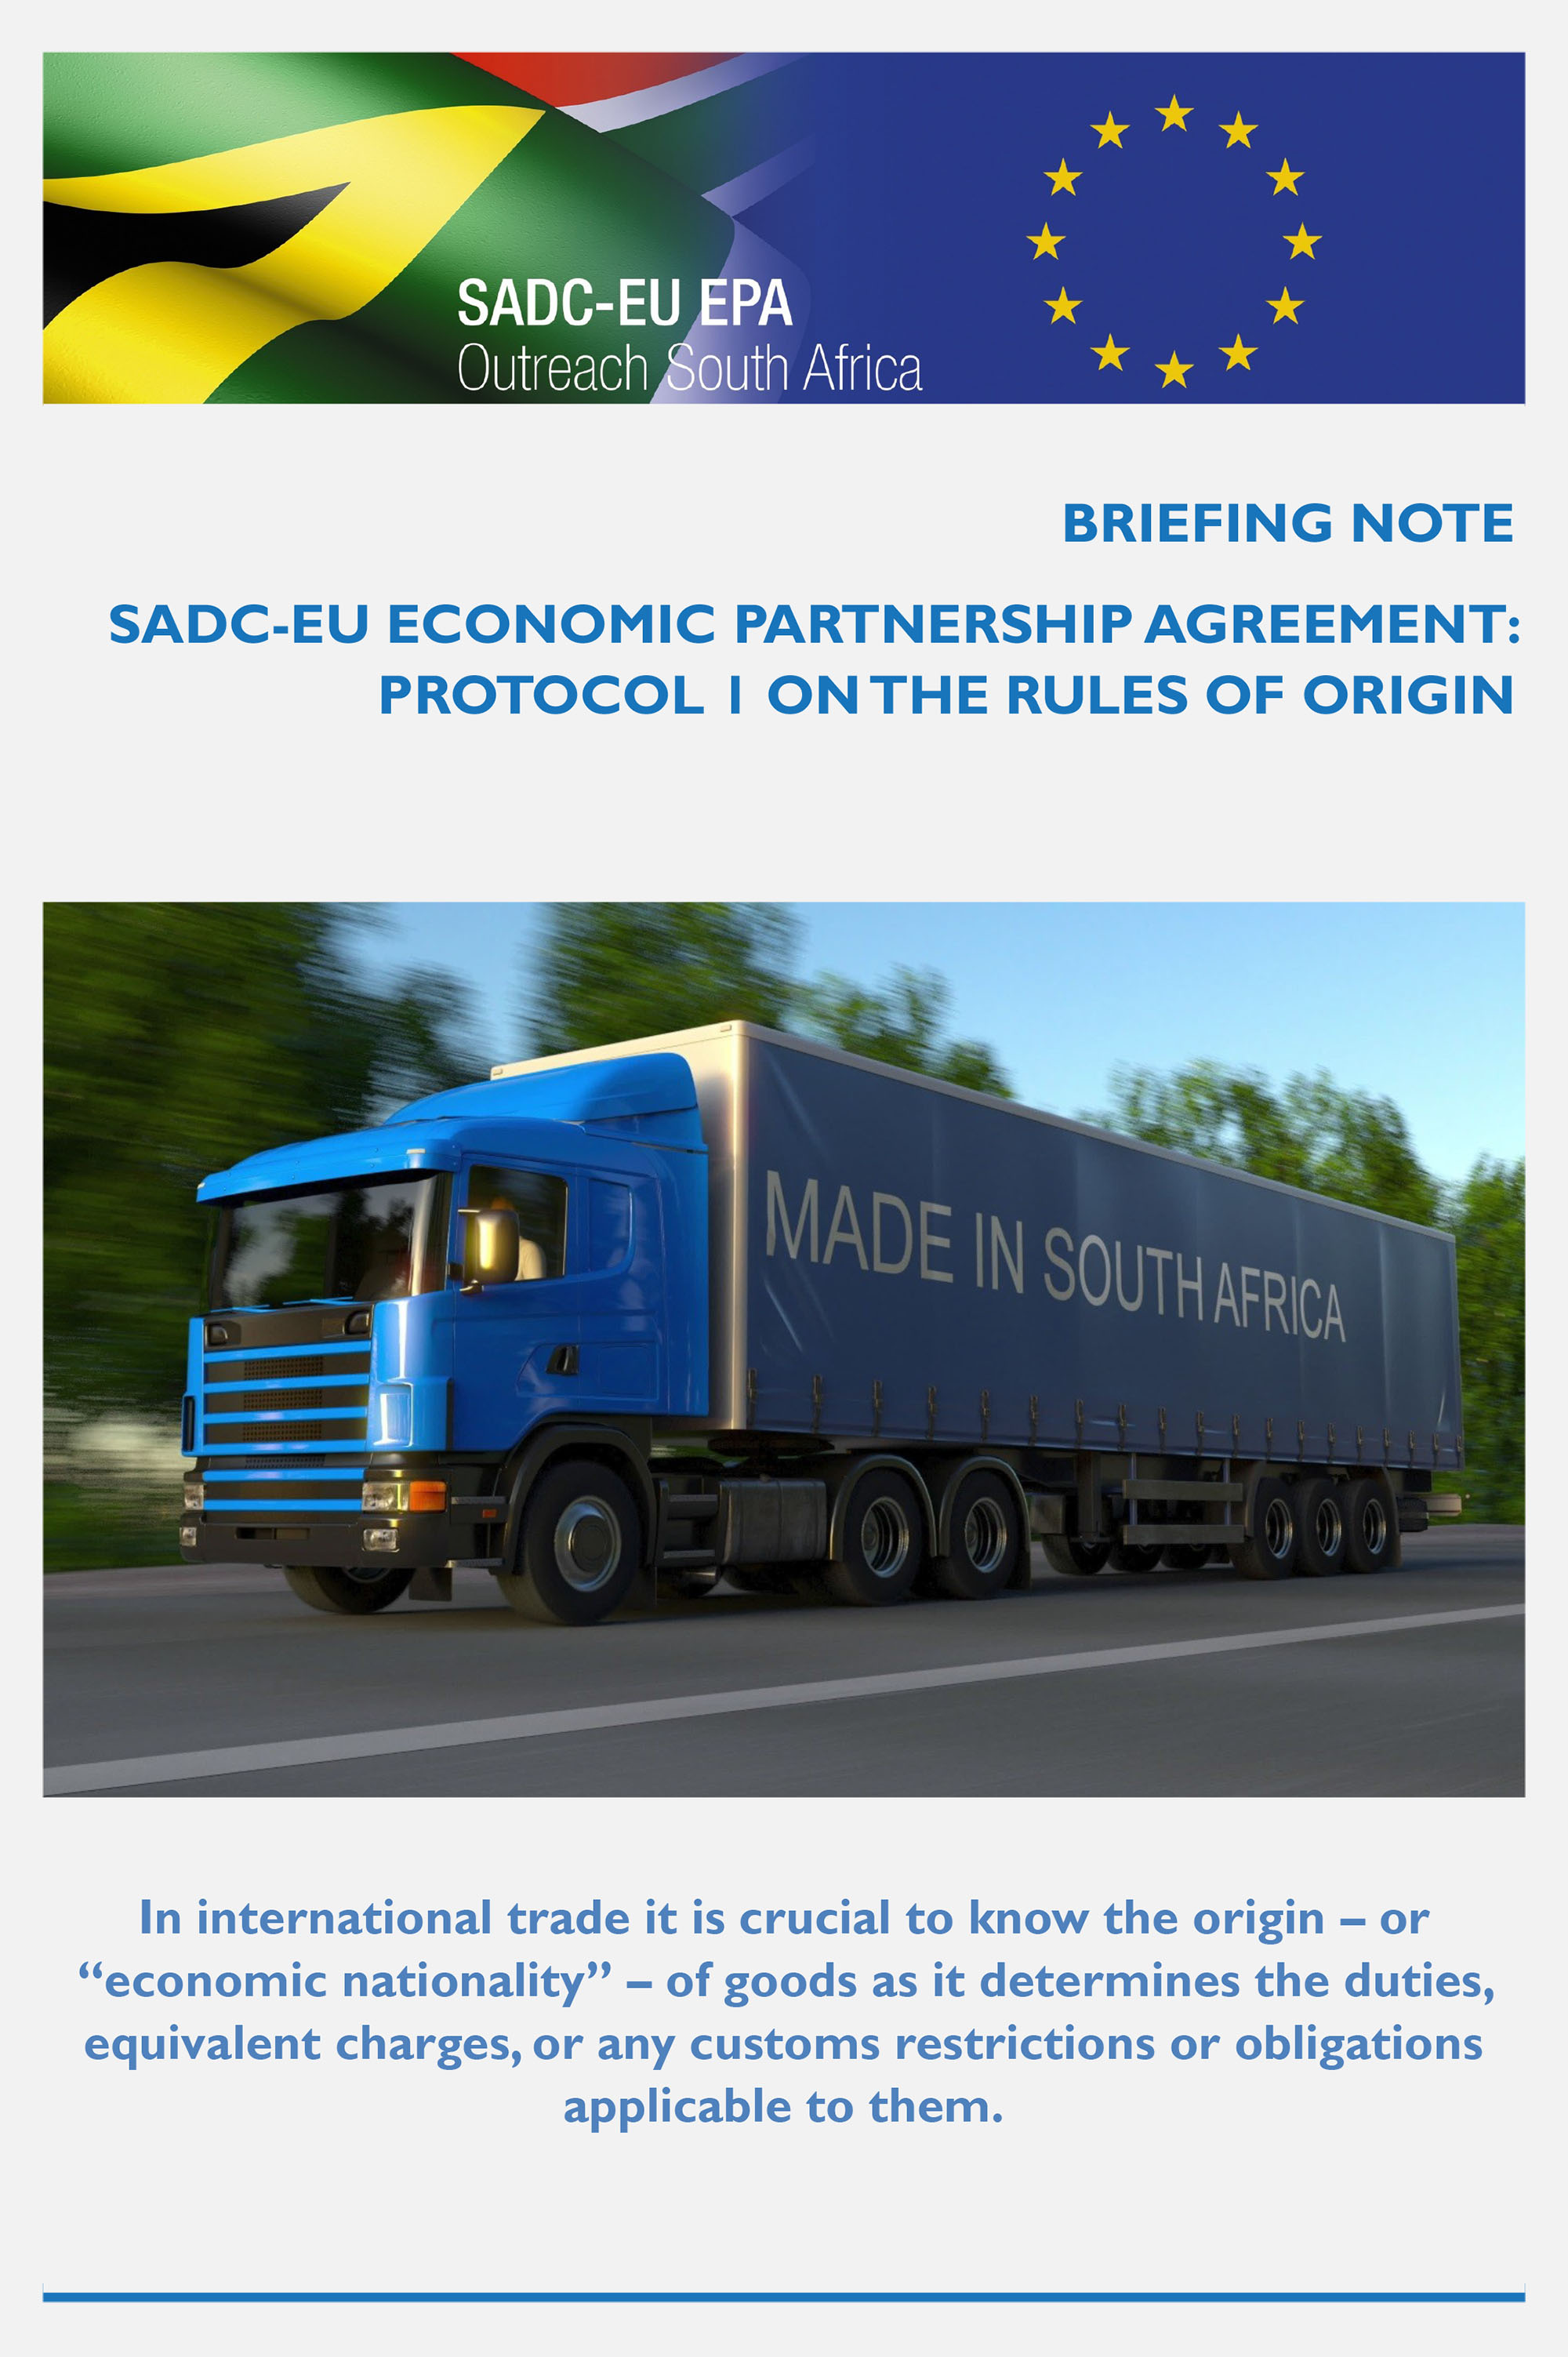 SADC-EU EPA: Protocol 1 on the Rules of Origin